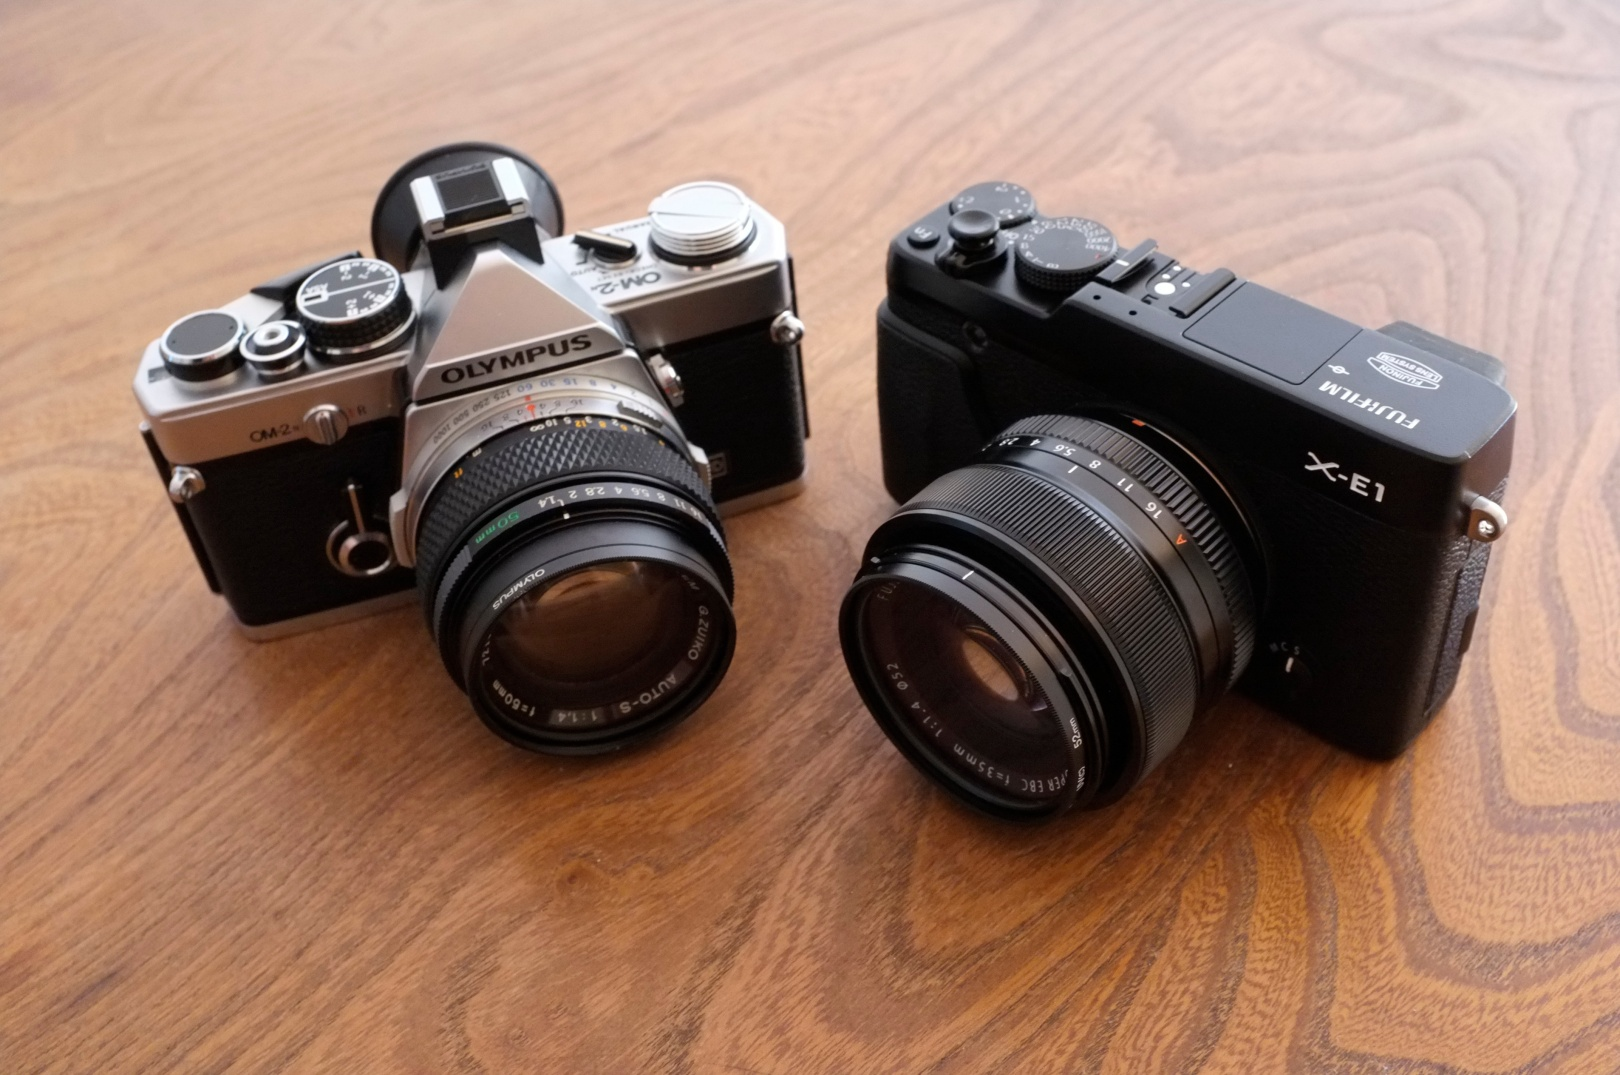 My two favourite cameras - the Olympus OM-2n and Fujifilm X-E1